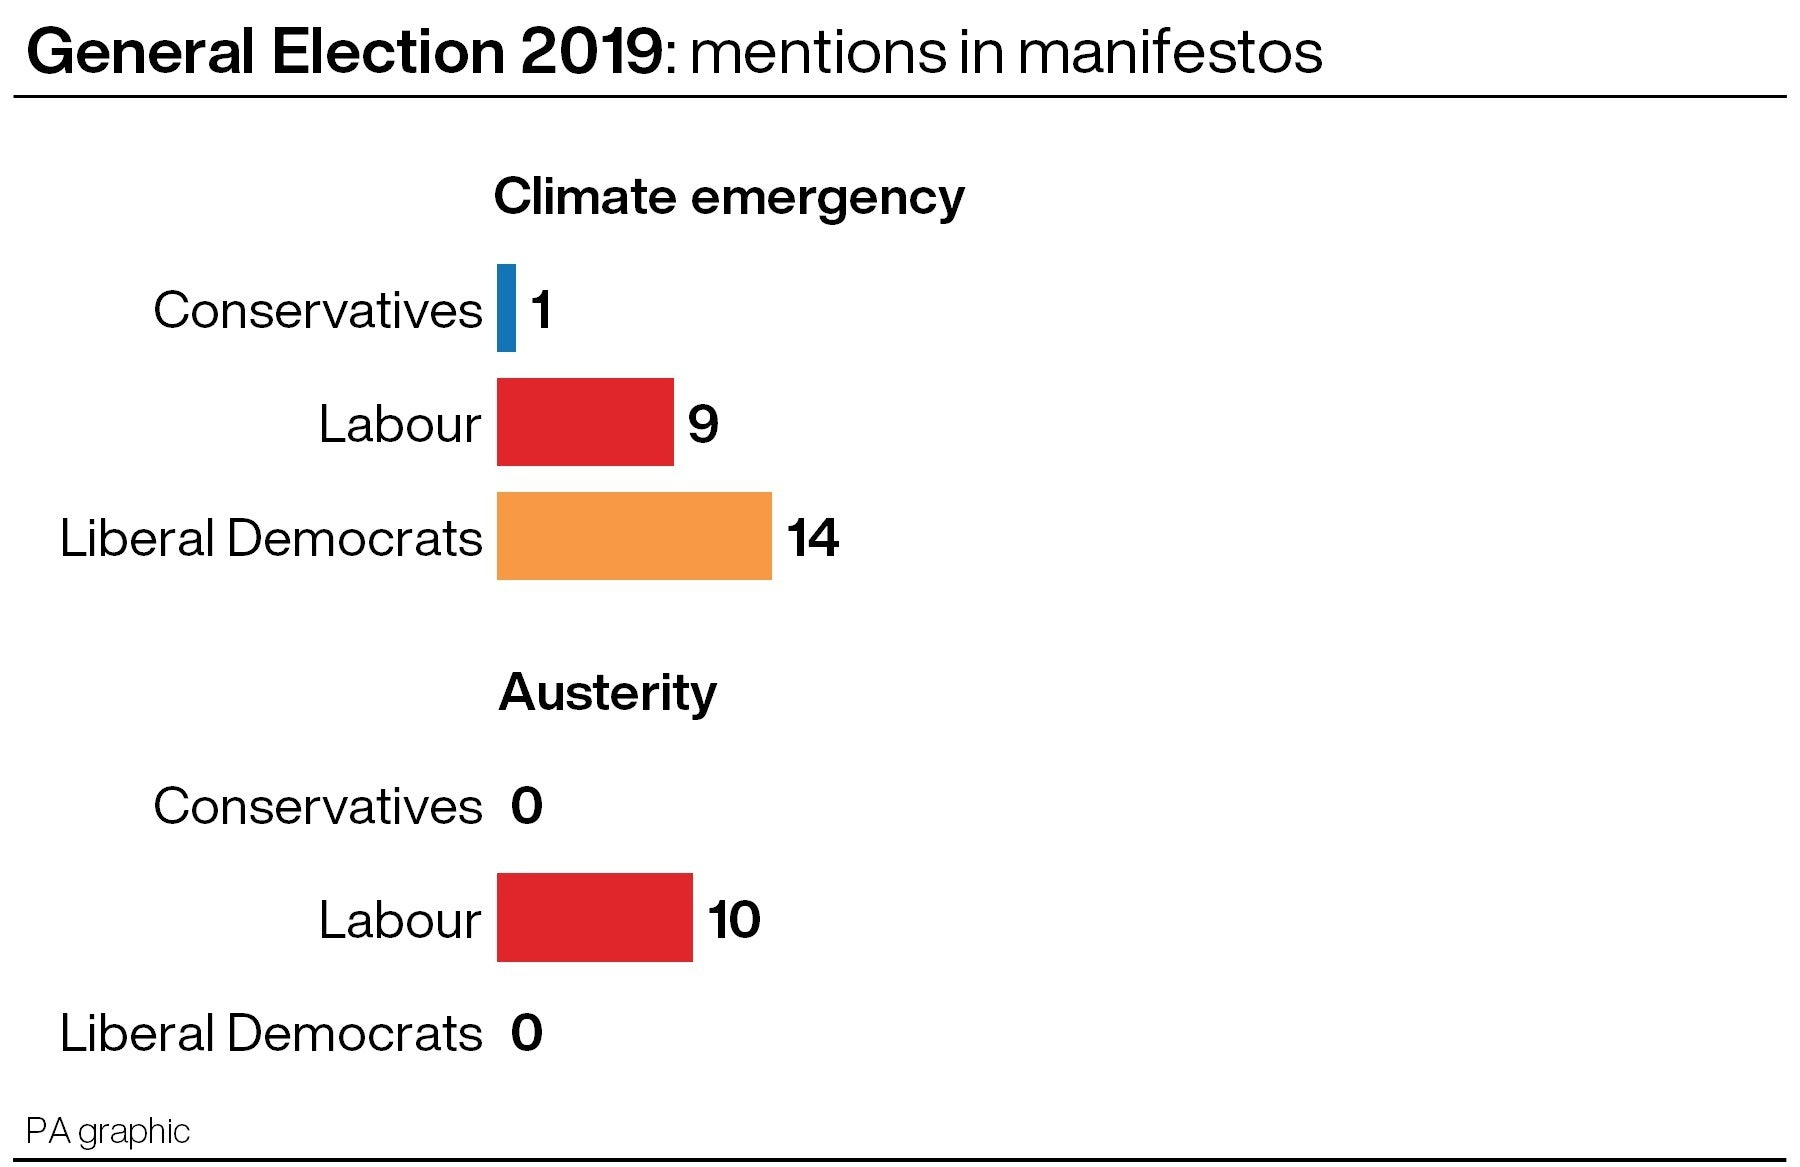 Mentions of key words in the main party manifestos